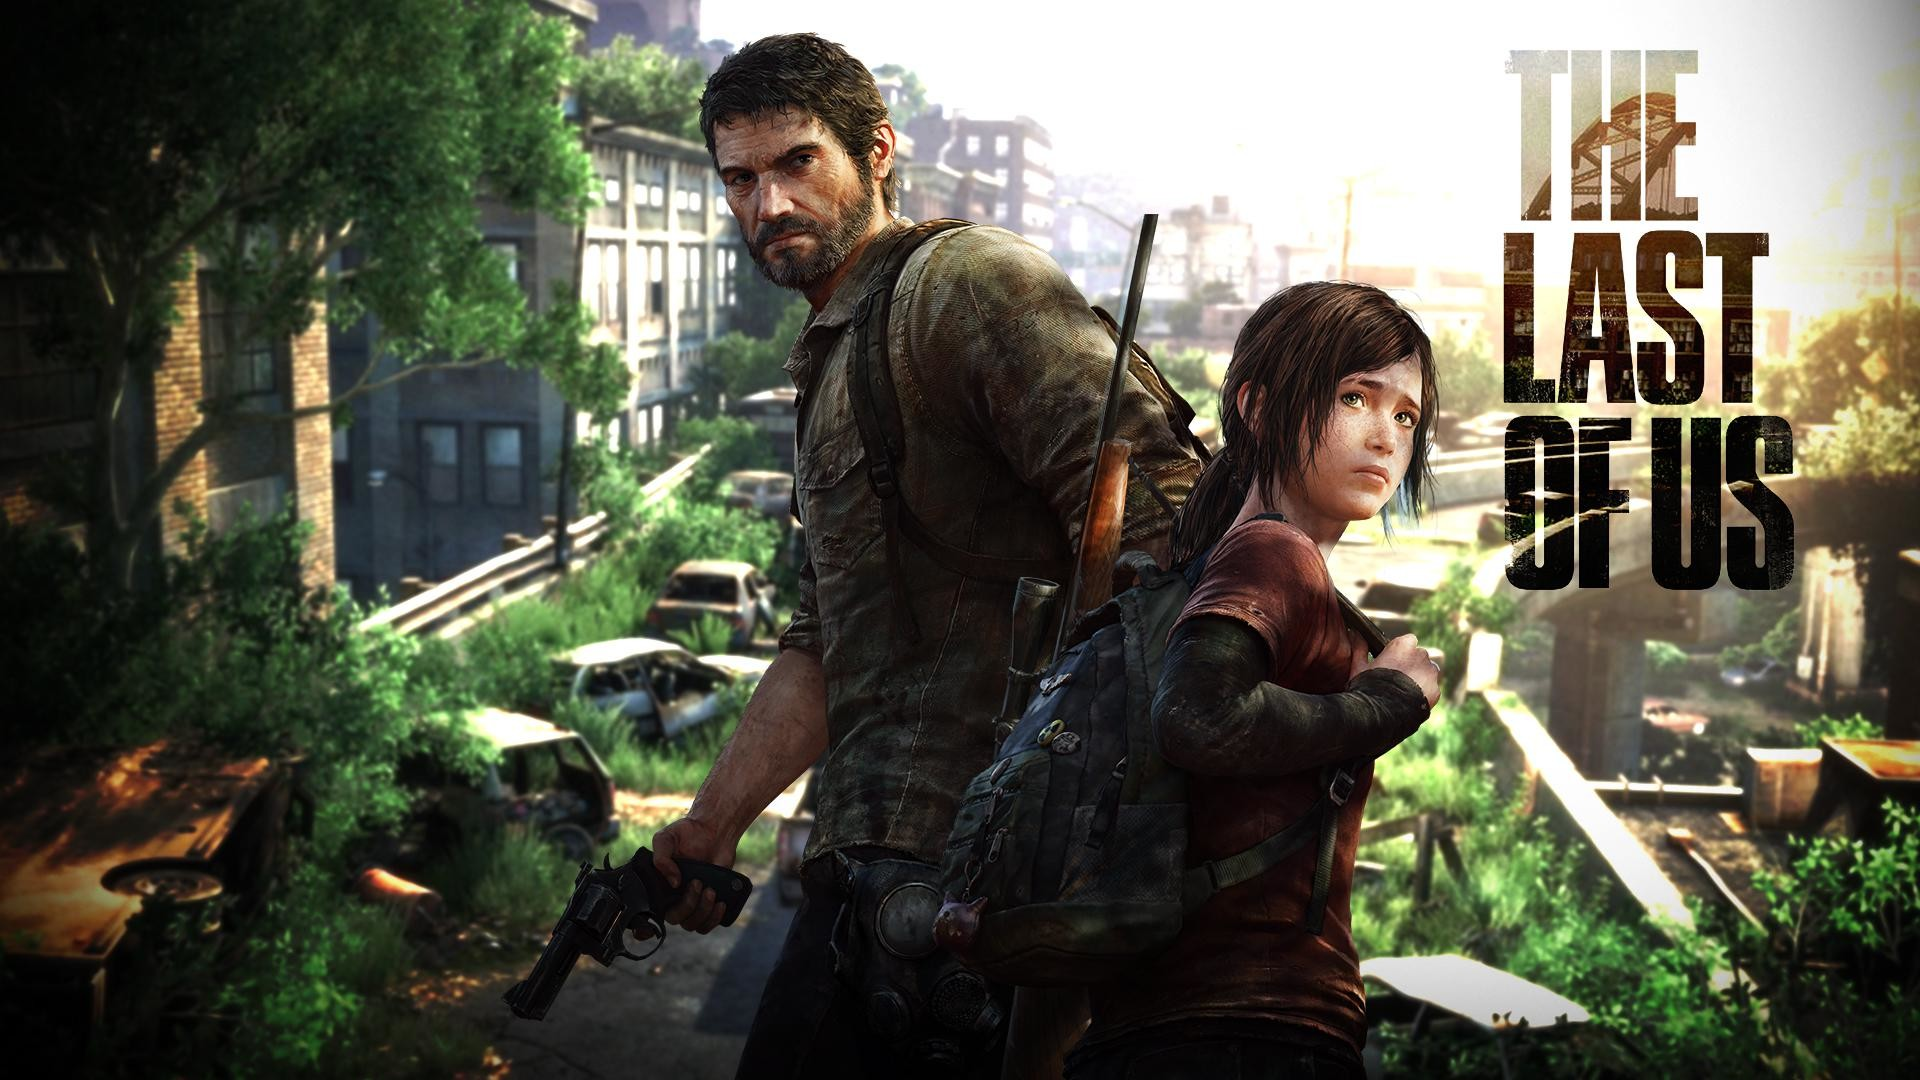 The Last Of Us Wallpapers Wallpapertag